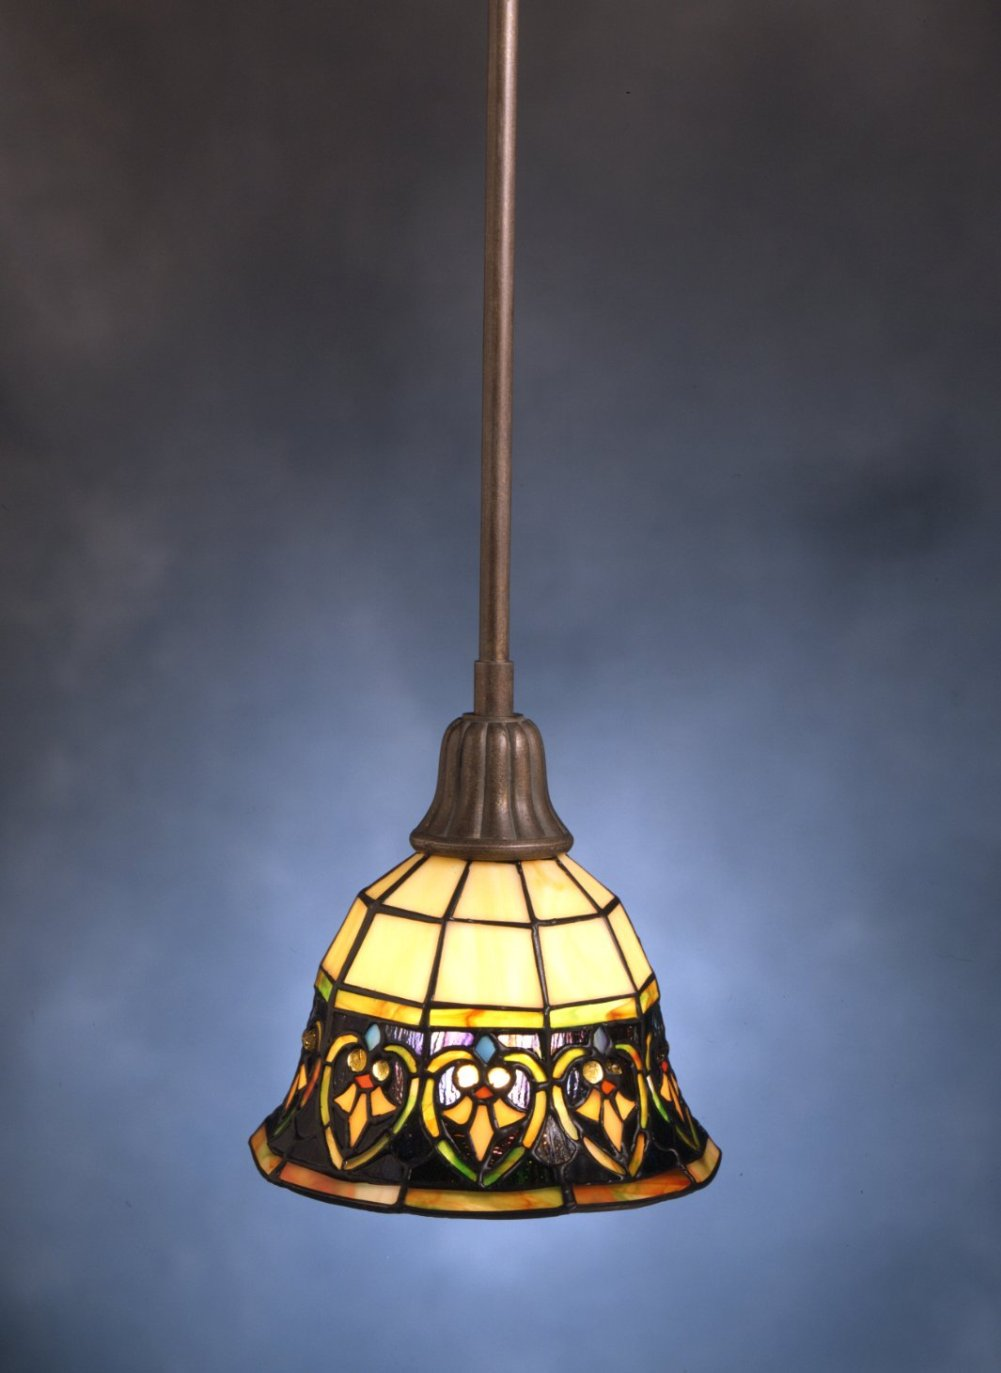 Kichler Pendant lighting down side